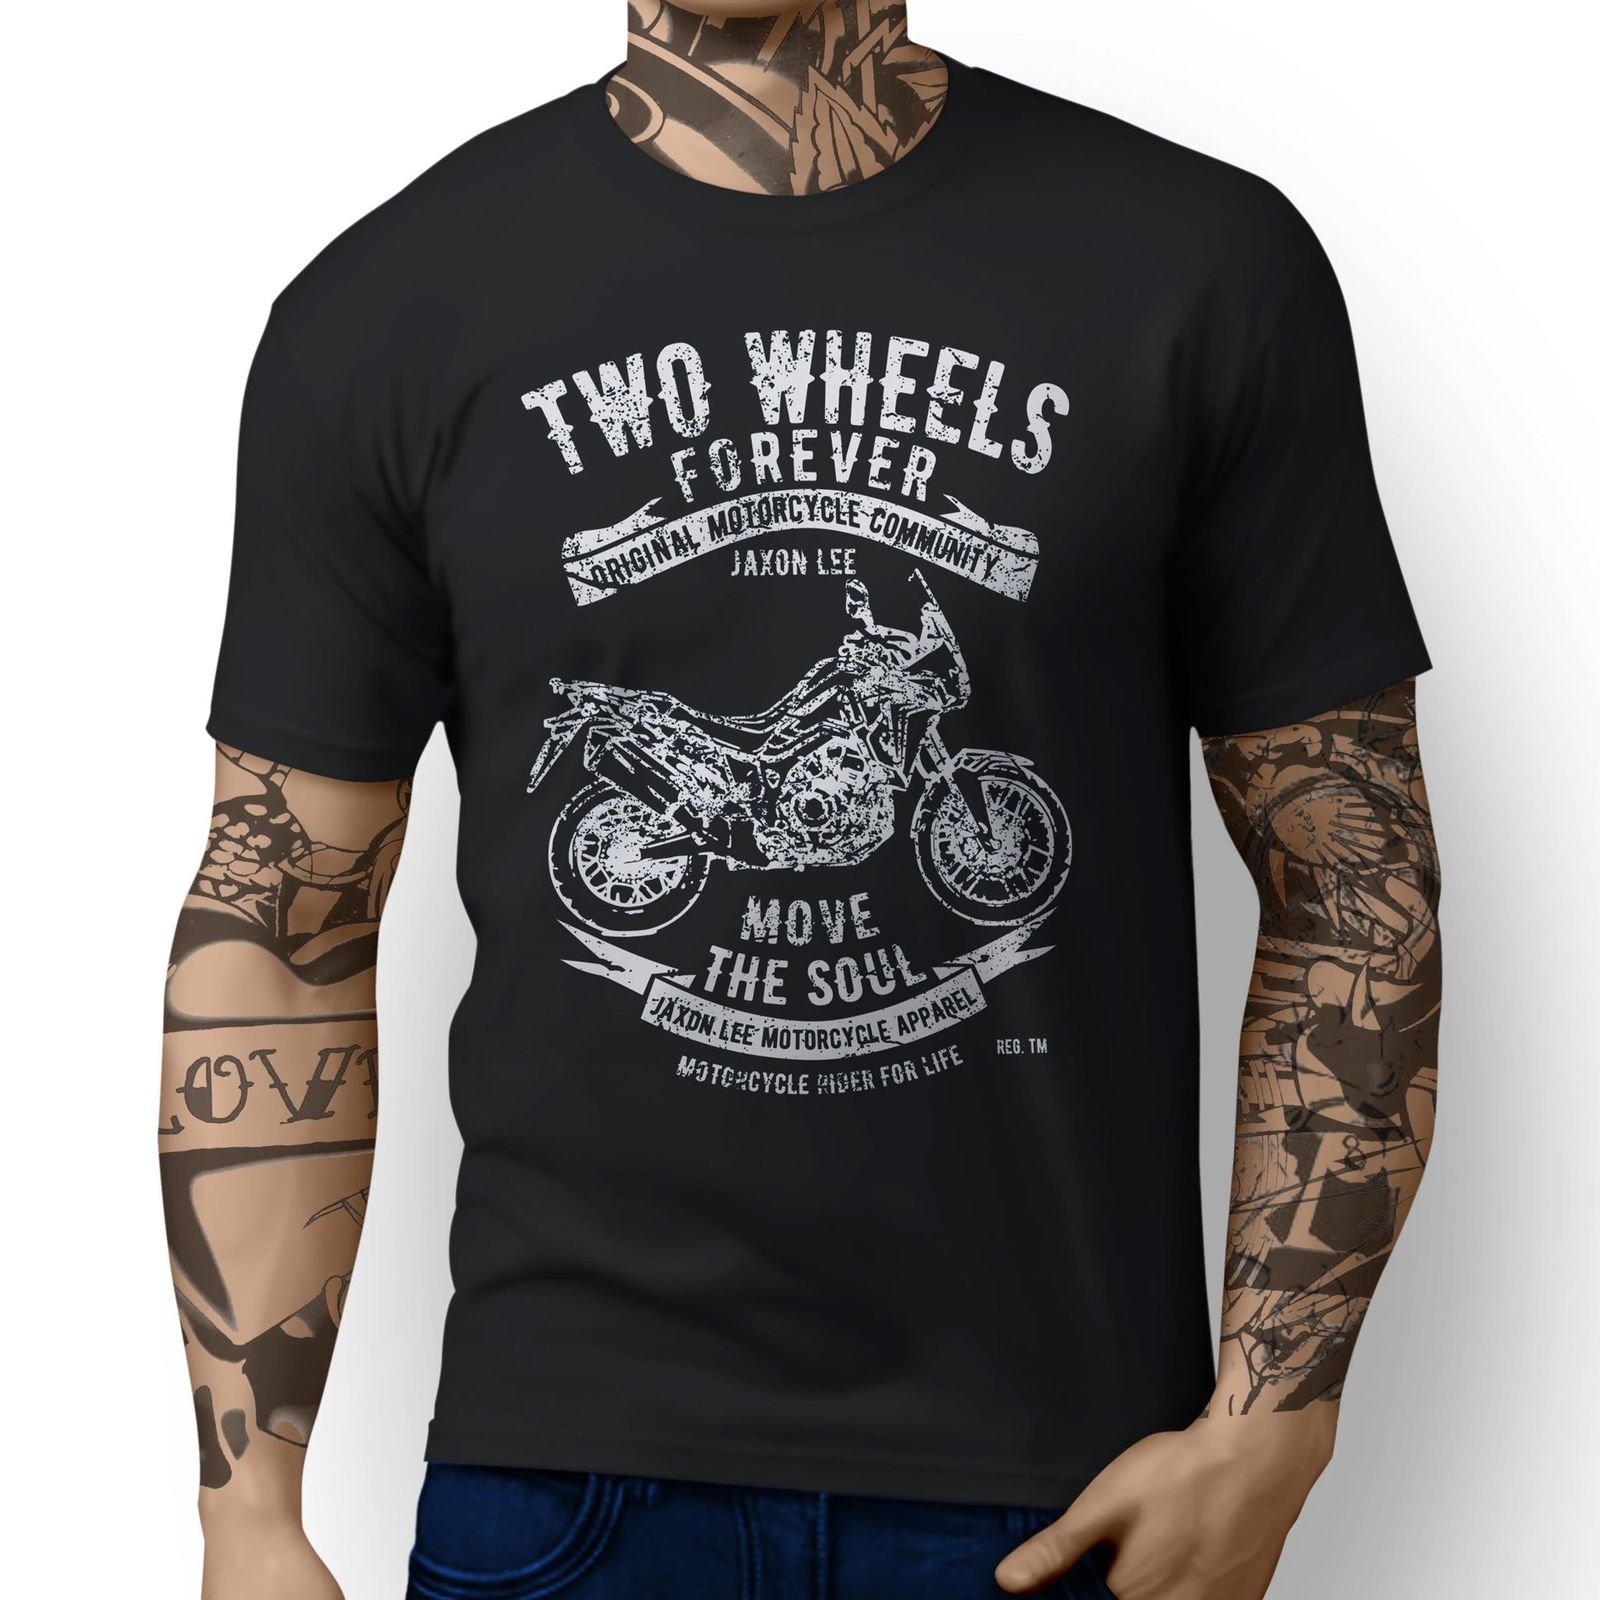 2019 New Summer Cool Japanese Classic Motorbike Africa Twin 2016 inspired Motorcycle Art design T shirts Tee Shirt in T Shirts from Men 39 s Clothing